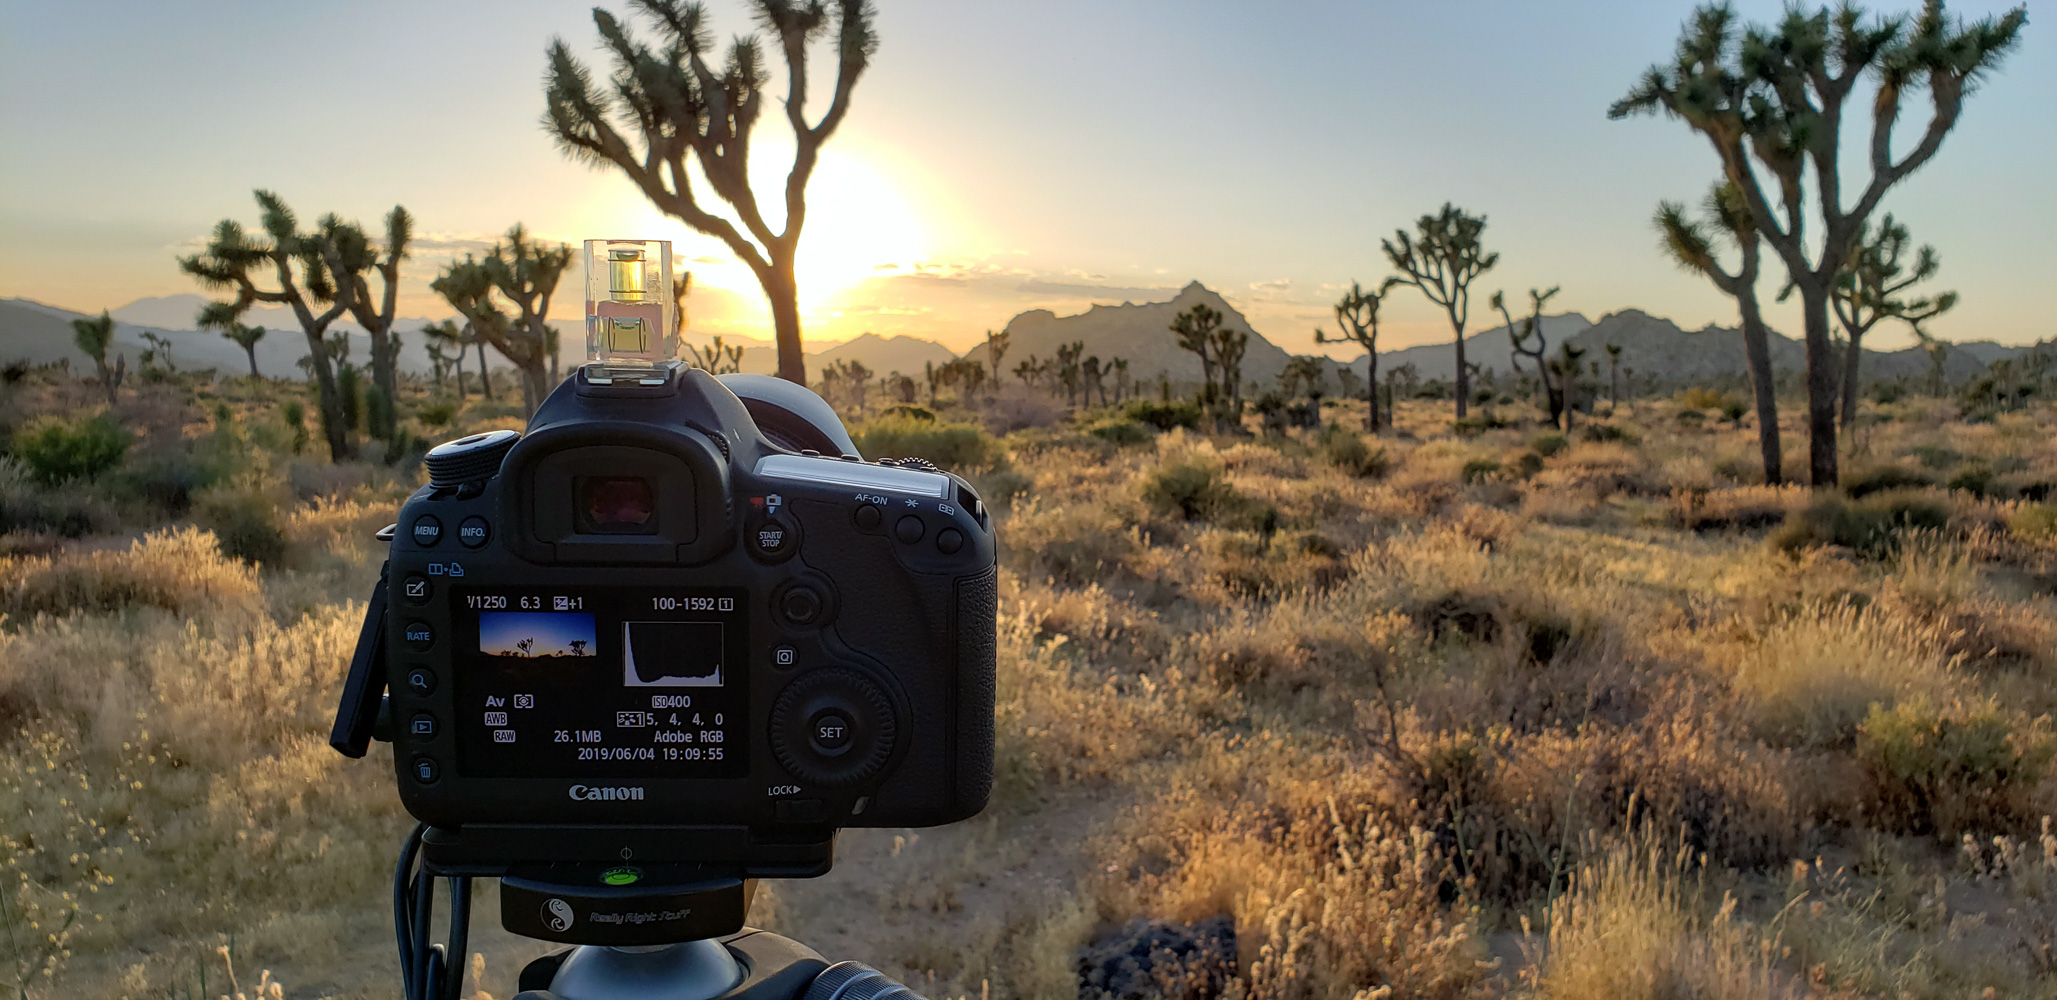 Joshua Tree national park shooting a timelapse of the sunset on the Boy Scout trail